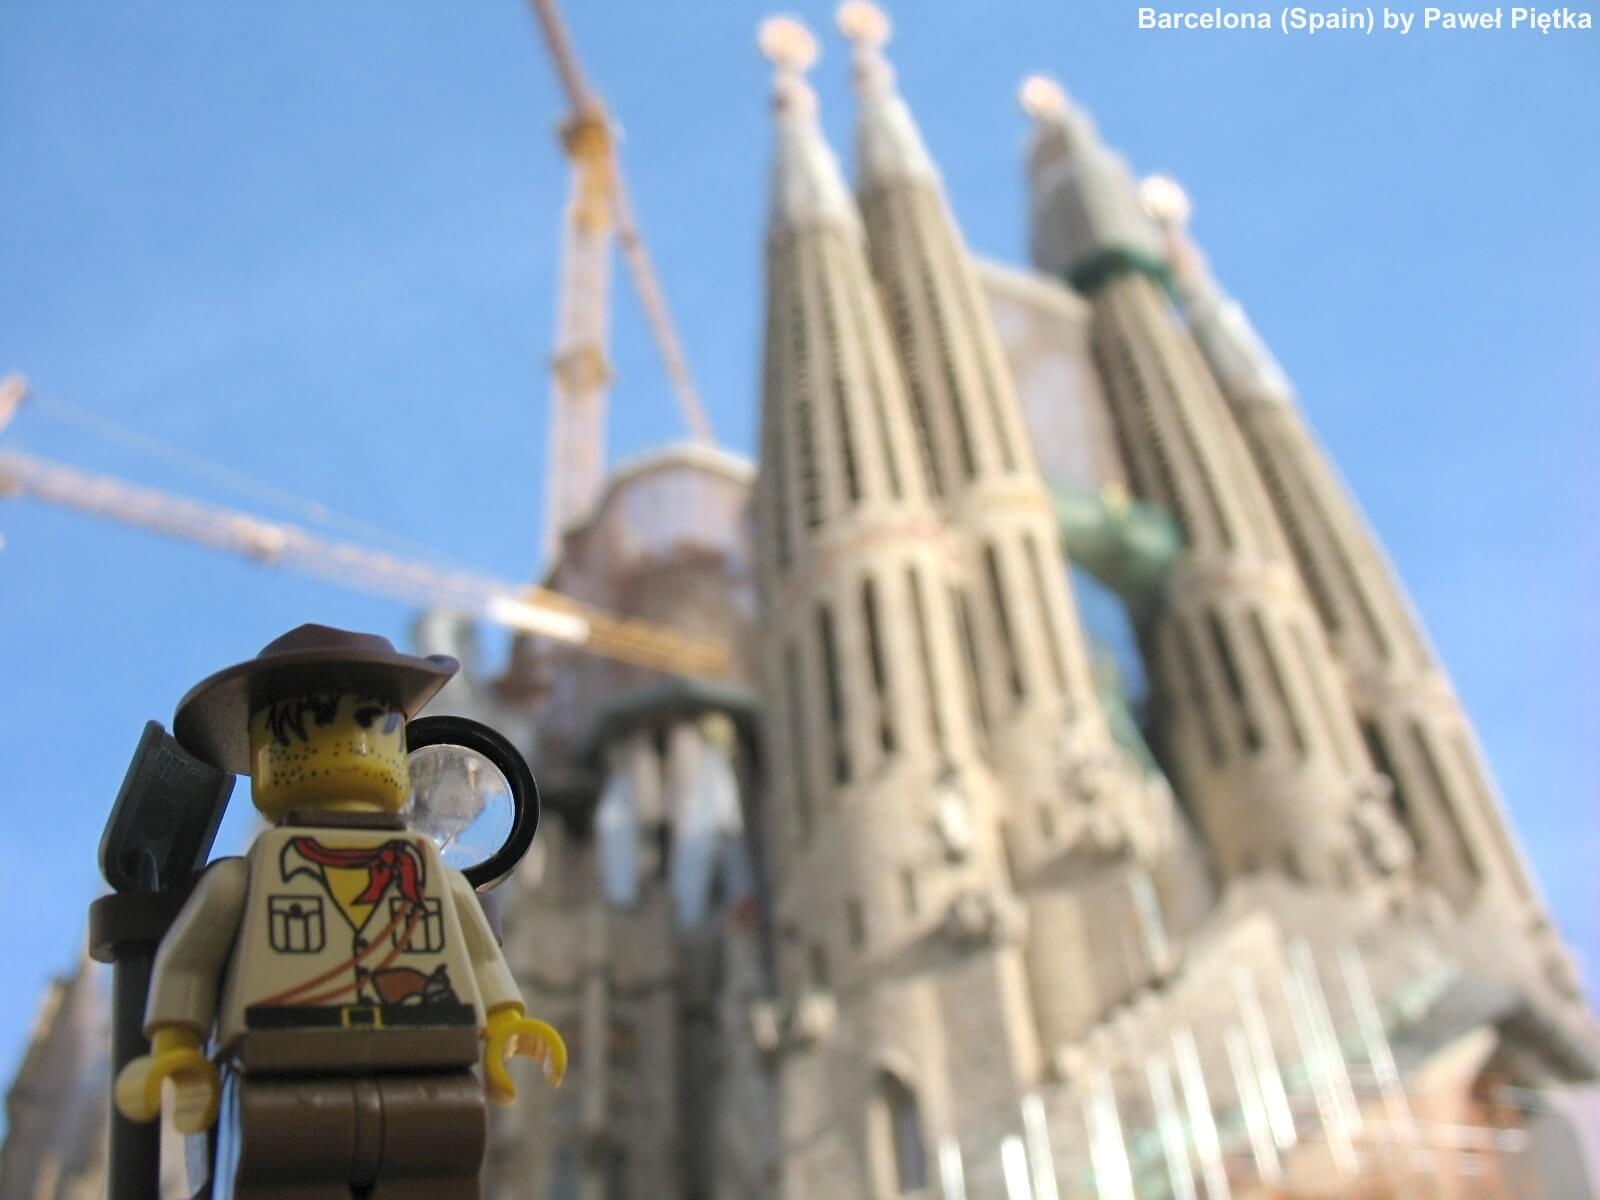 Barcelona (Spain) - Sagrada Familia